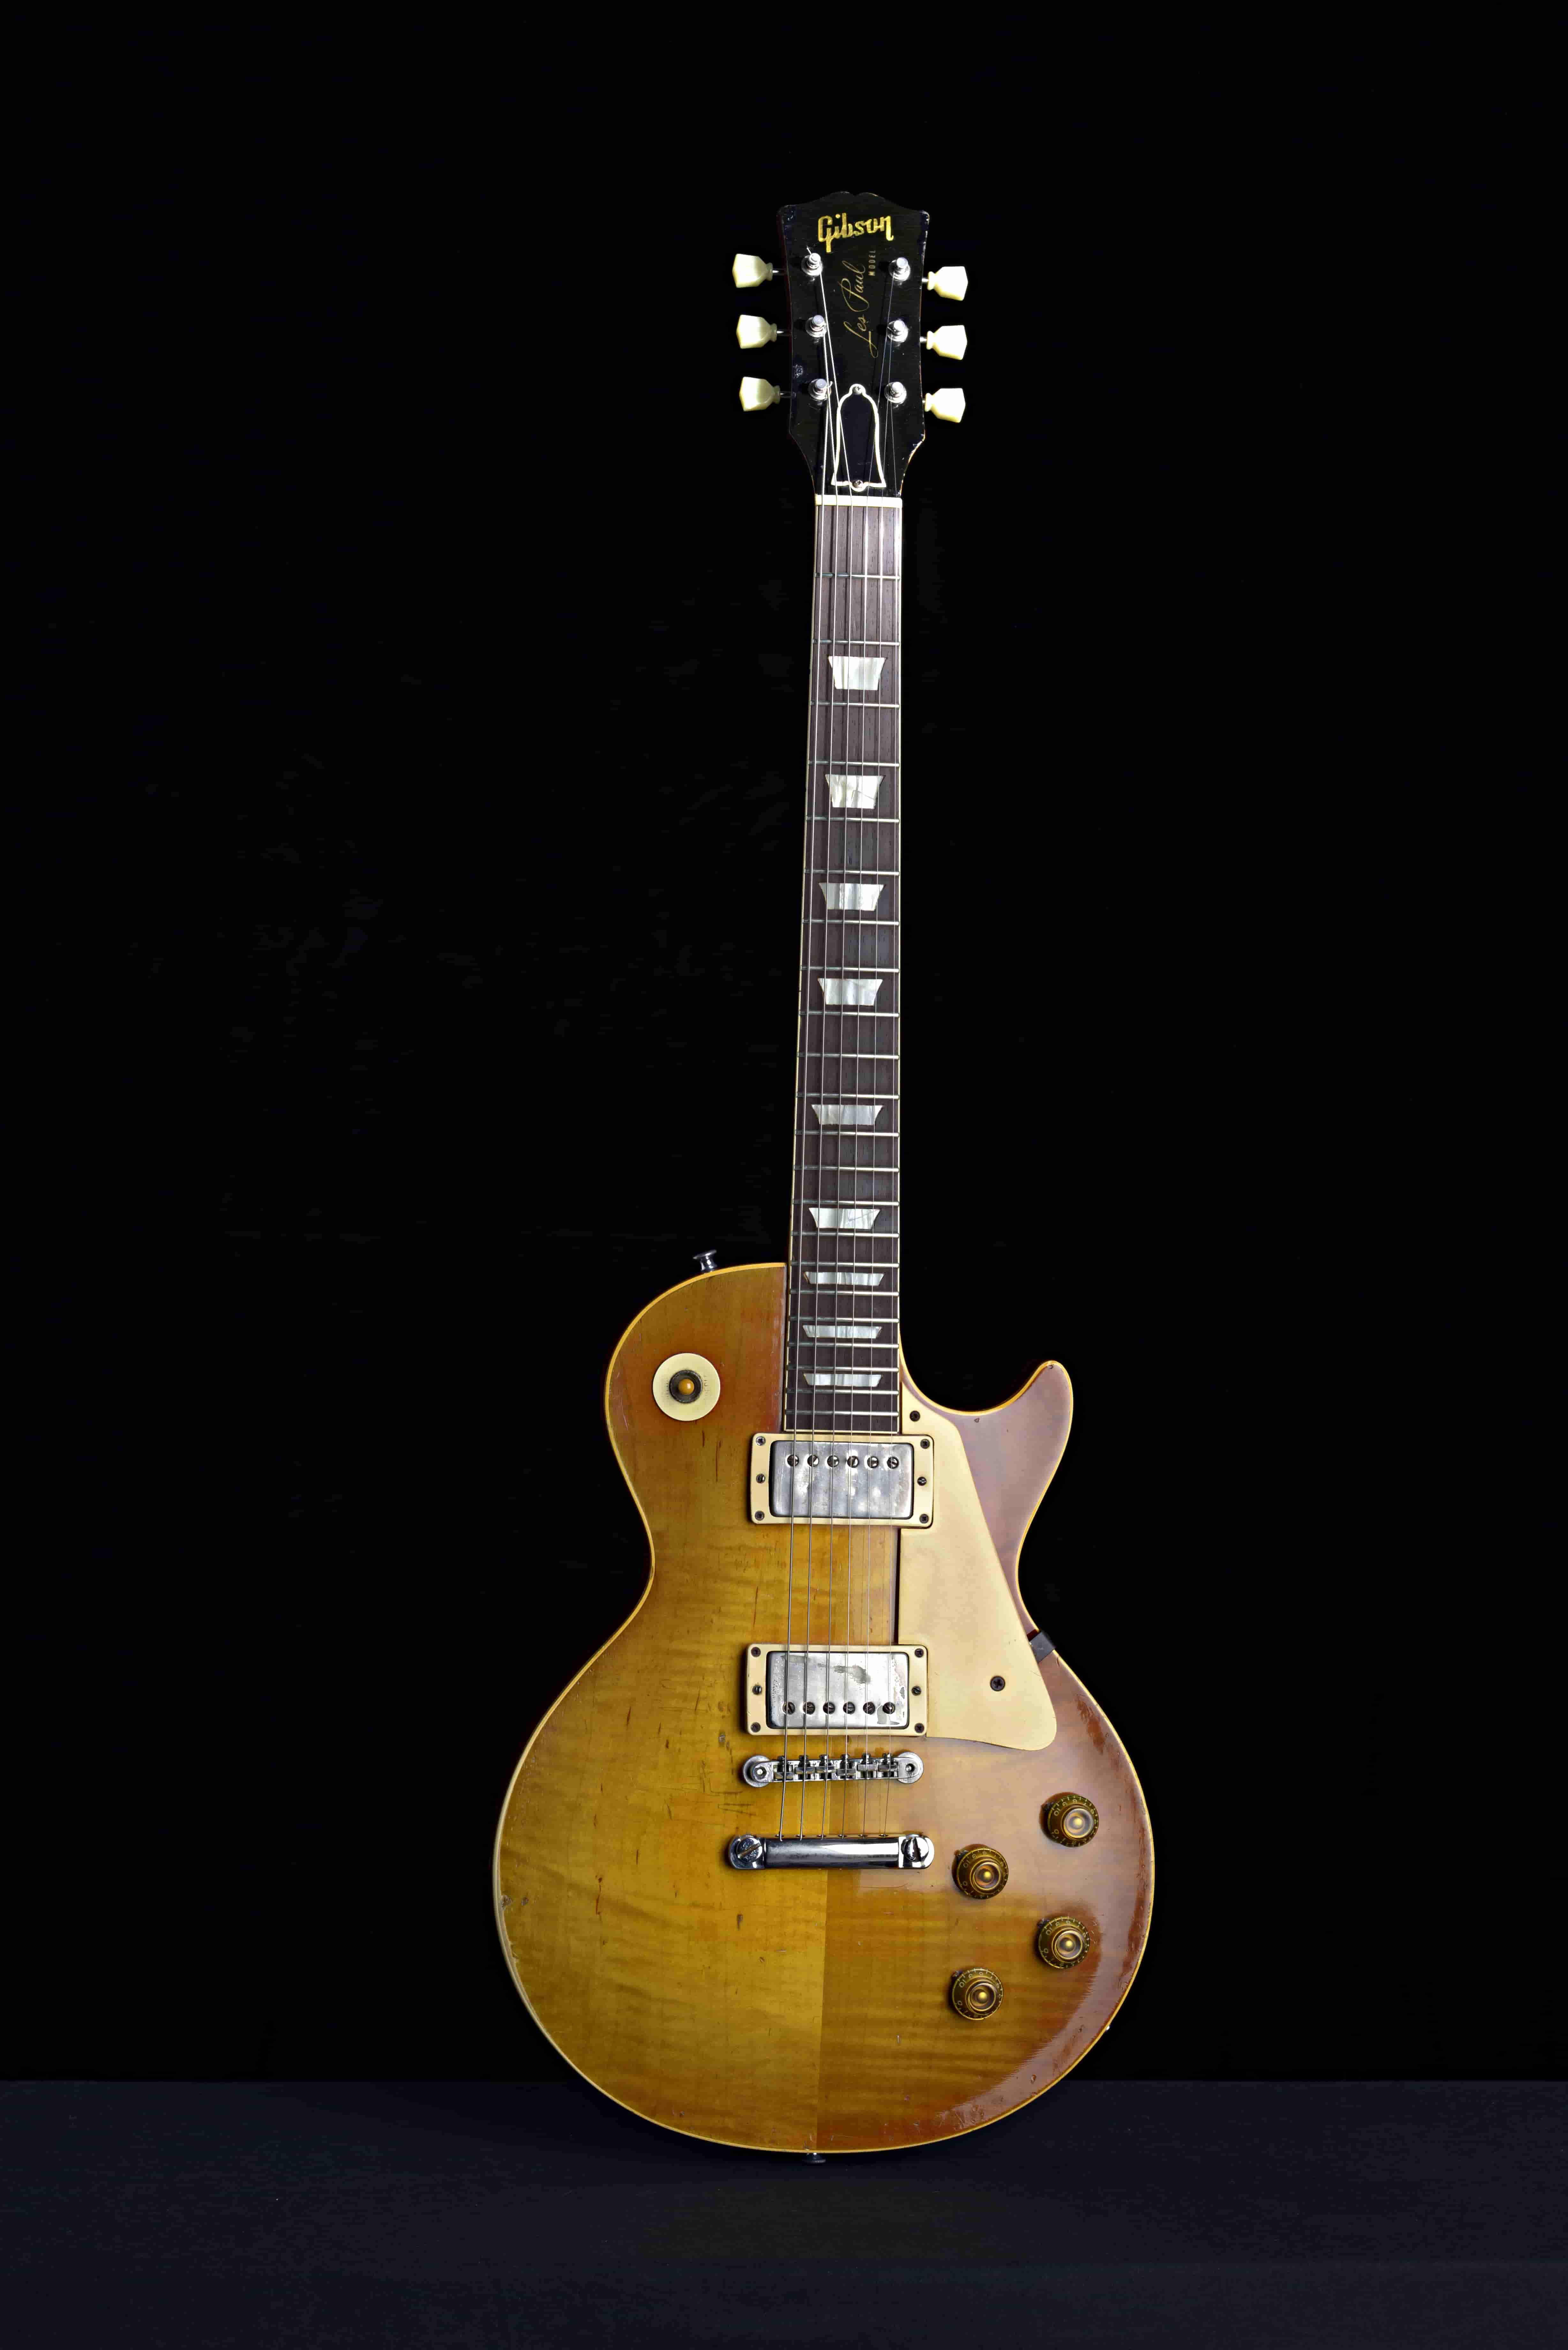 gibson-sounds-live-on-stage